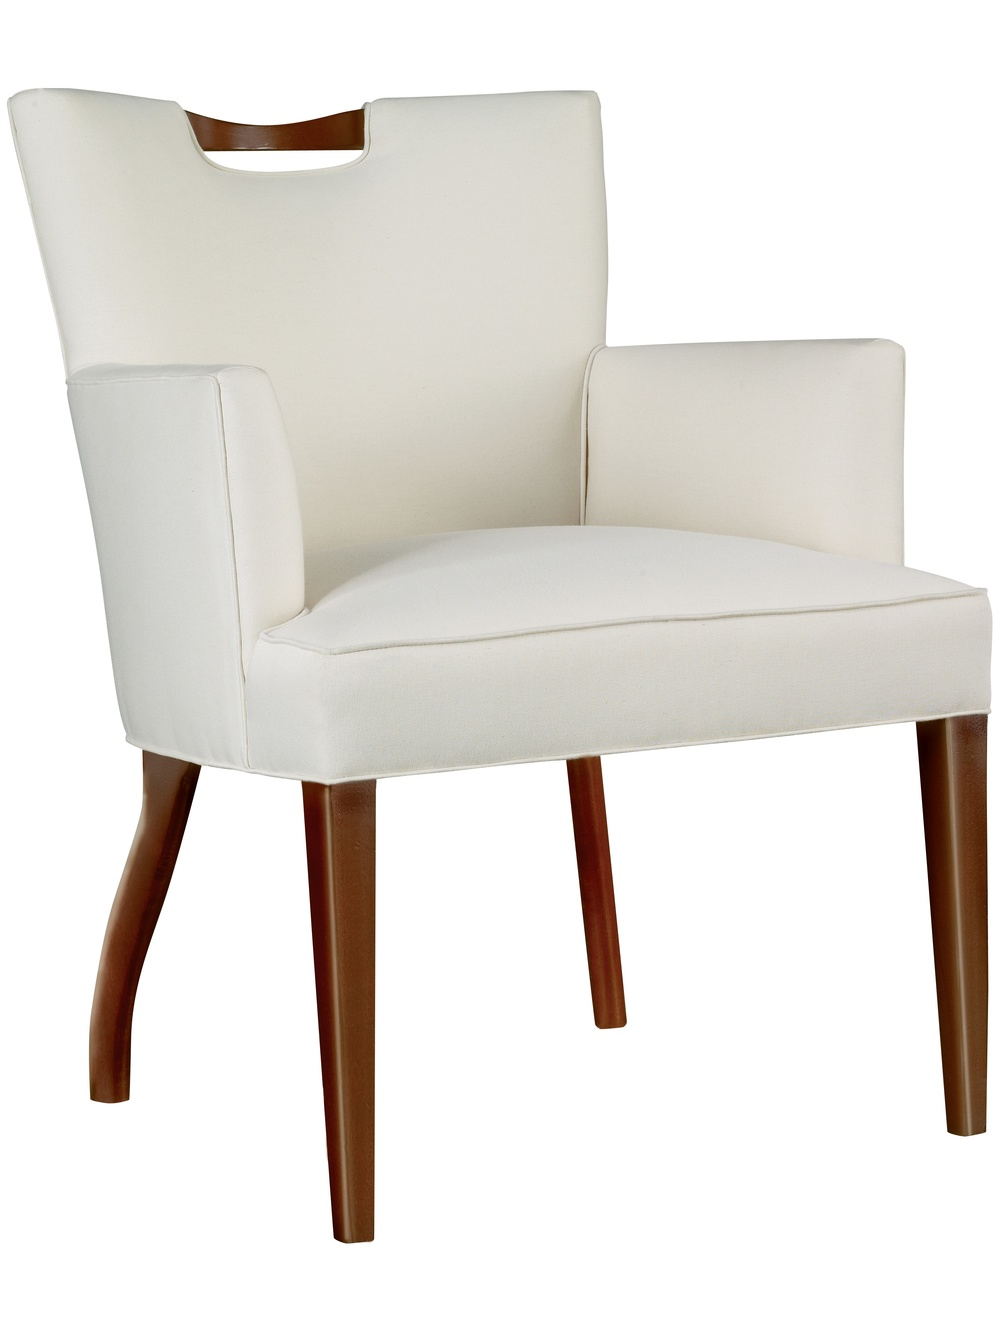 Hickory Chair - Carrie Chair